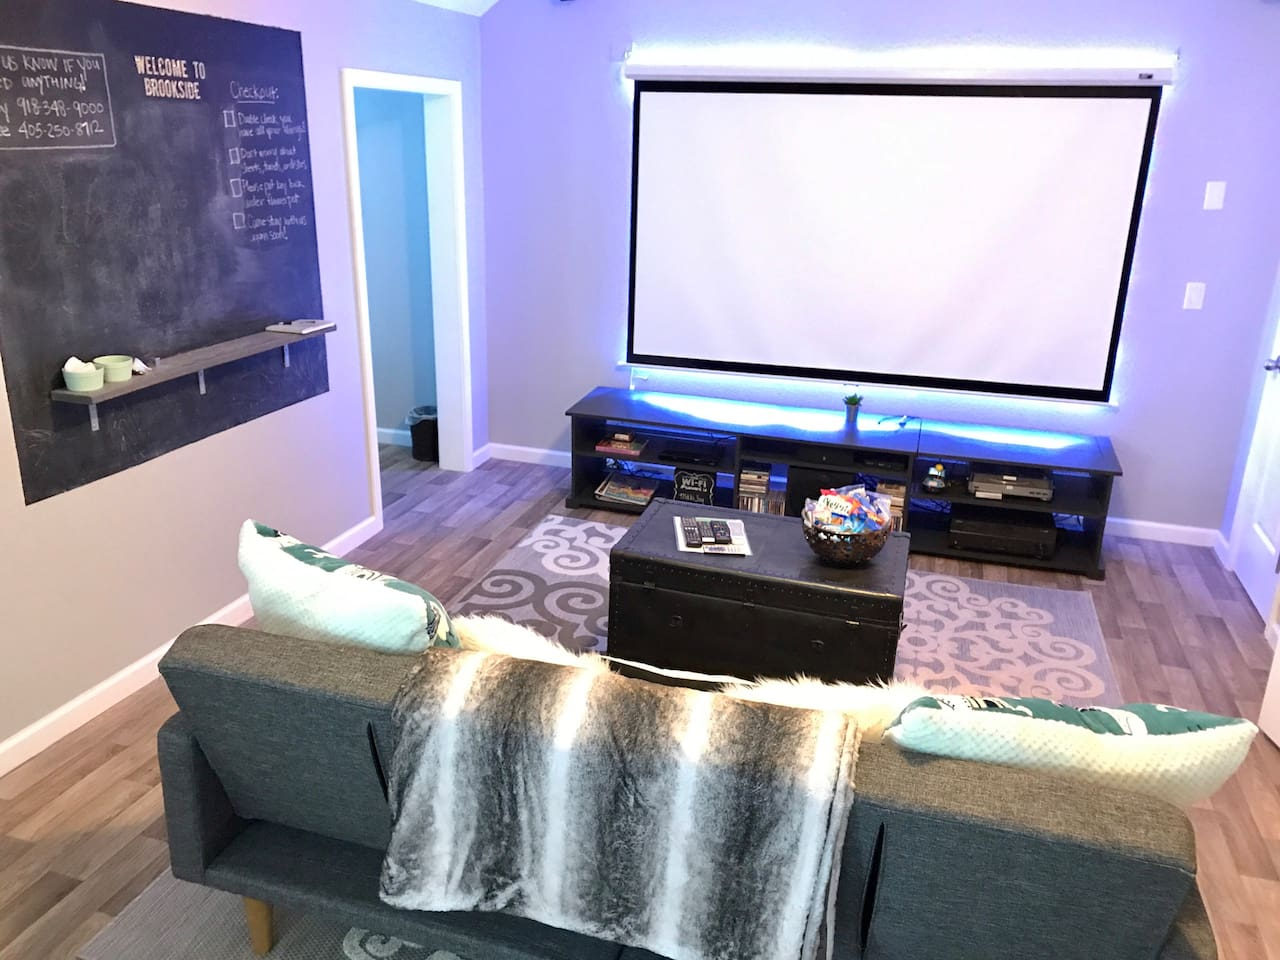 Enjoy the comfy couch with projector and surround sound. You can watch Netflix, Amazon Prime, something from our DVD collection, or stream from your iPhone! Free wifi.